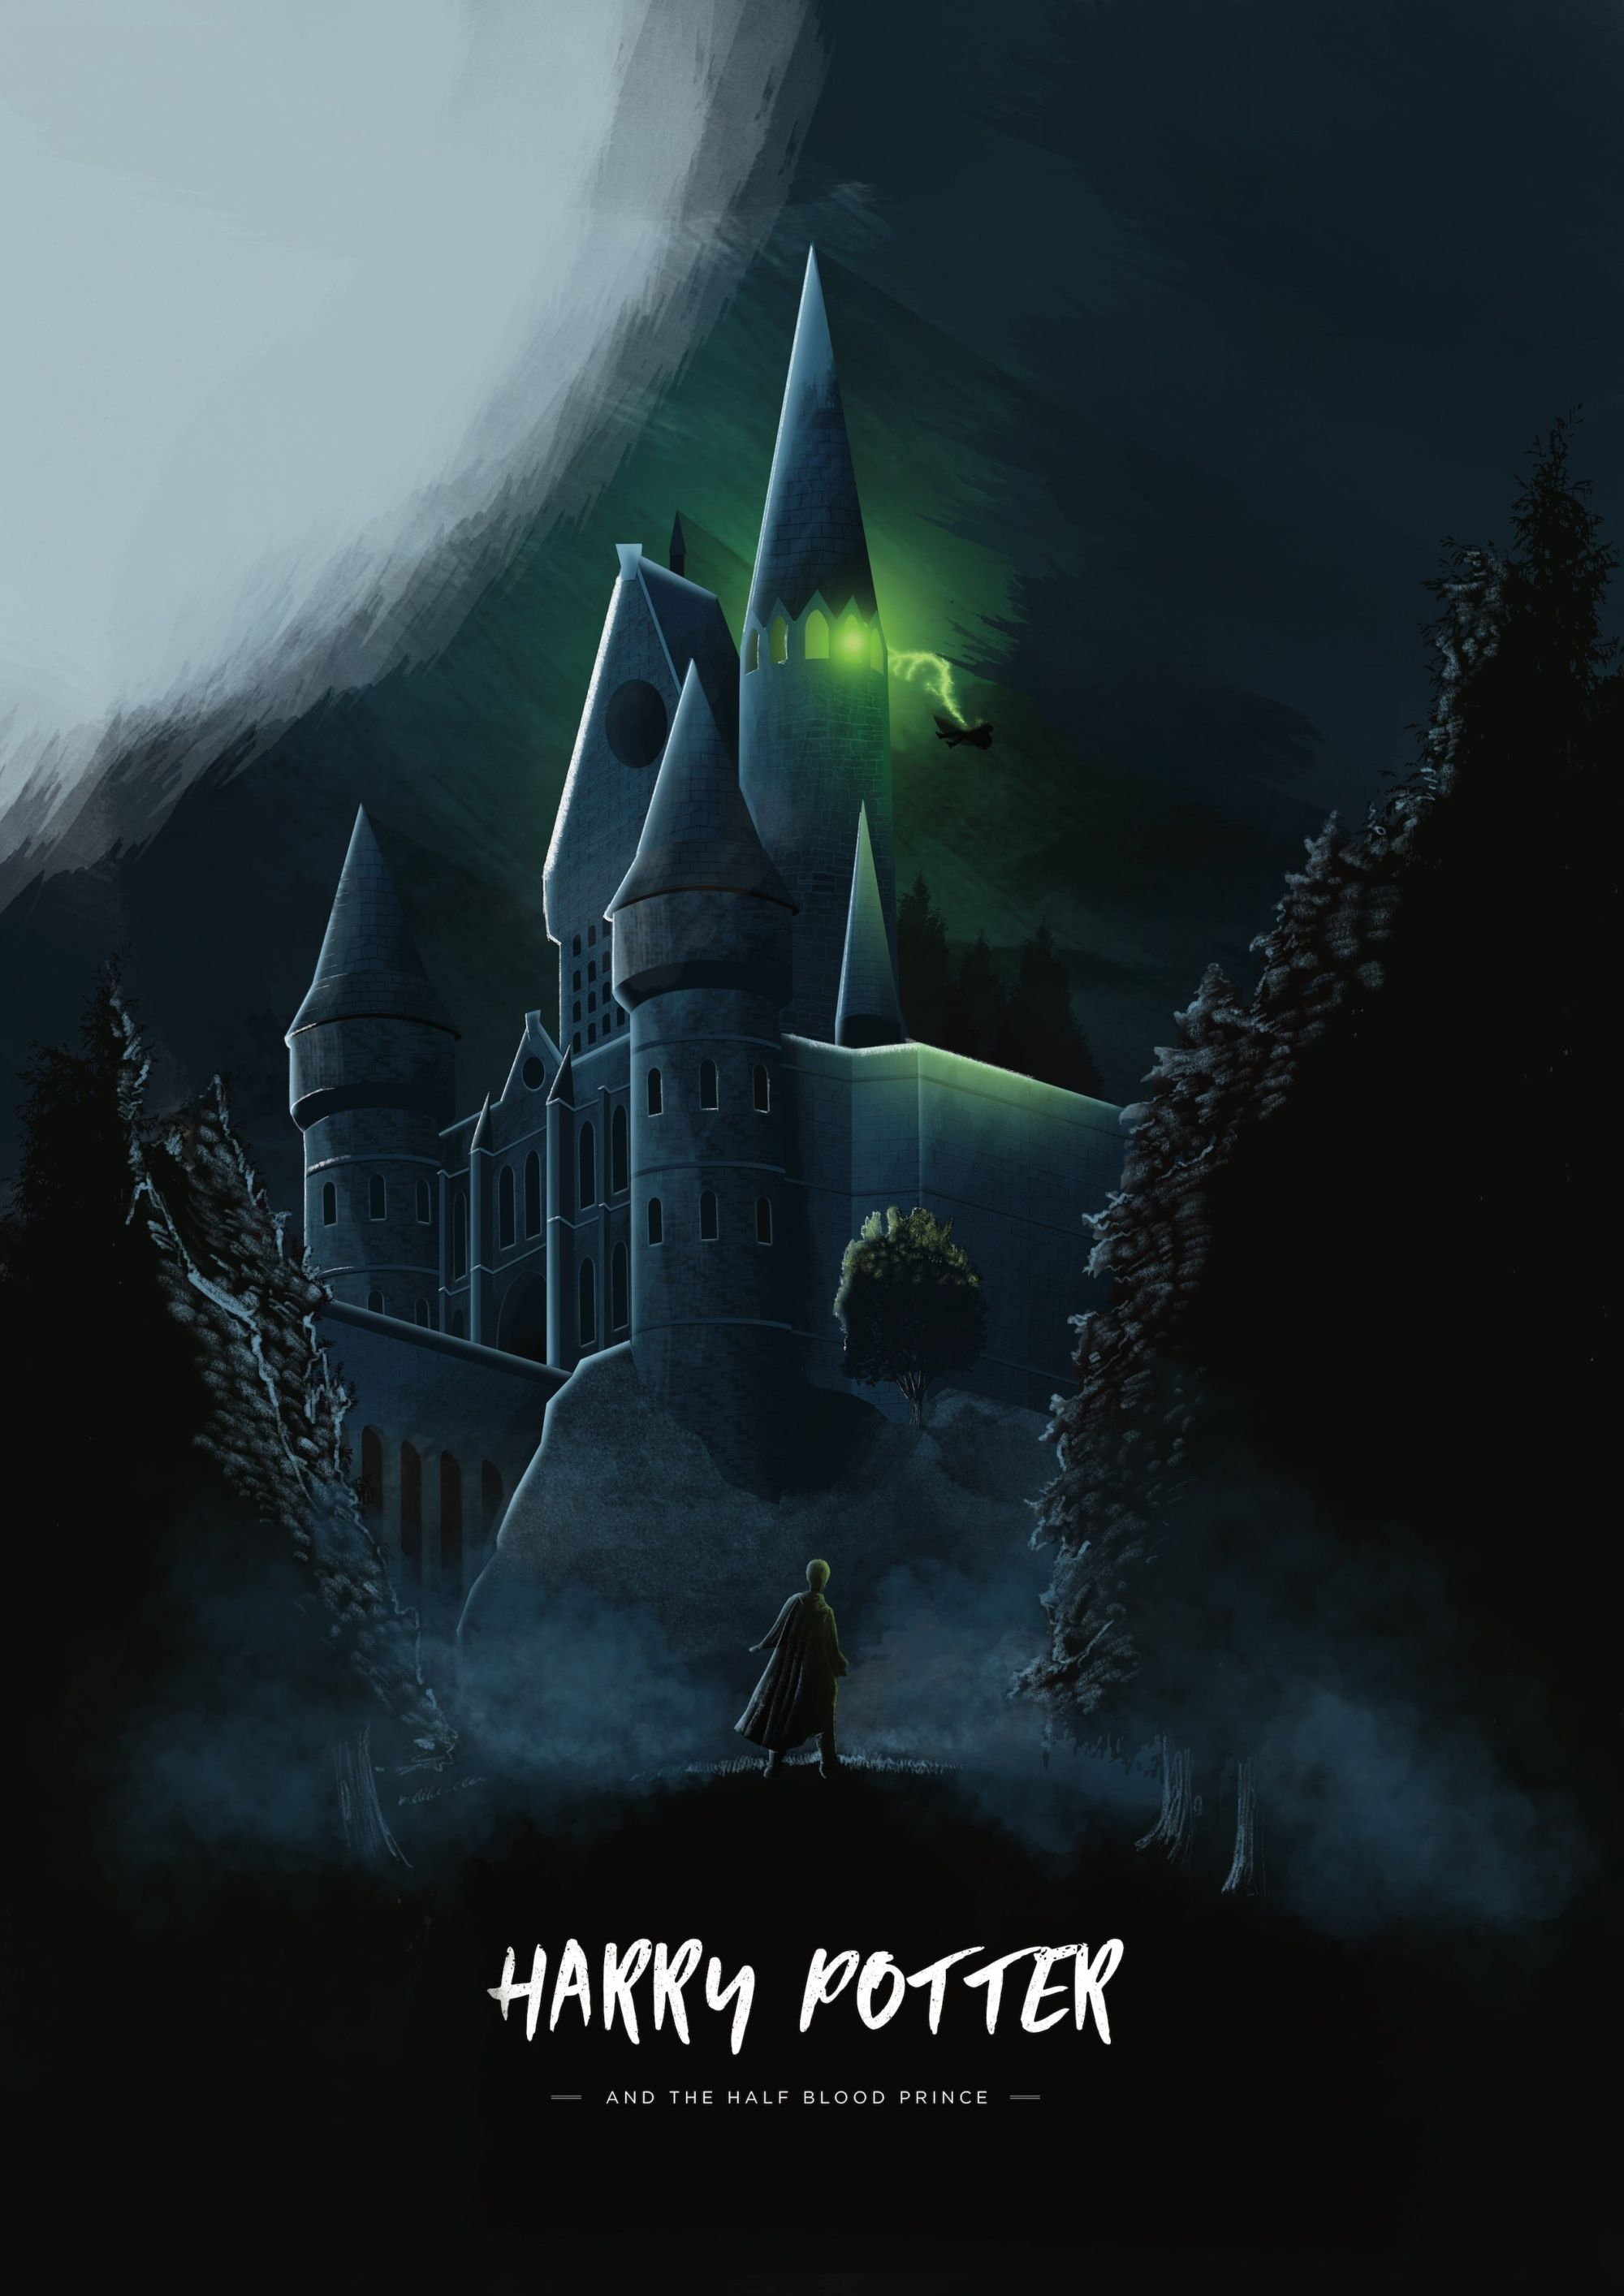 Limited Edition Harry Potter Movie Poster Set Posterspy Harry Potter Poster Harry Potter Illustrations Harry Potter Movie Posters